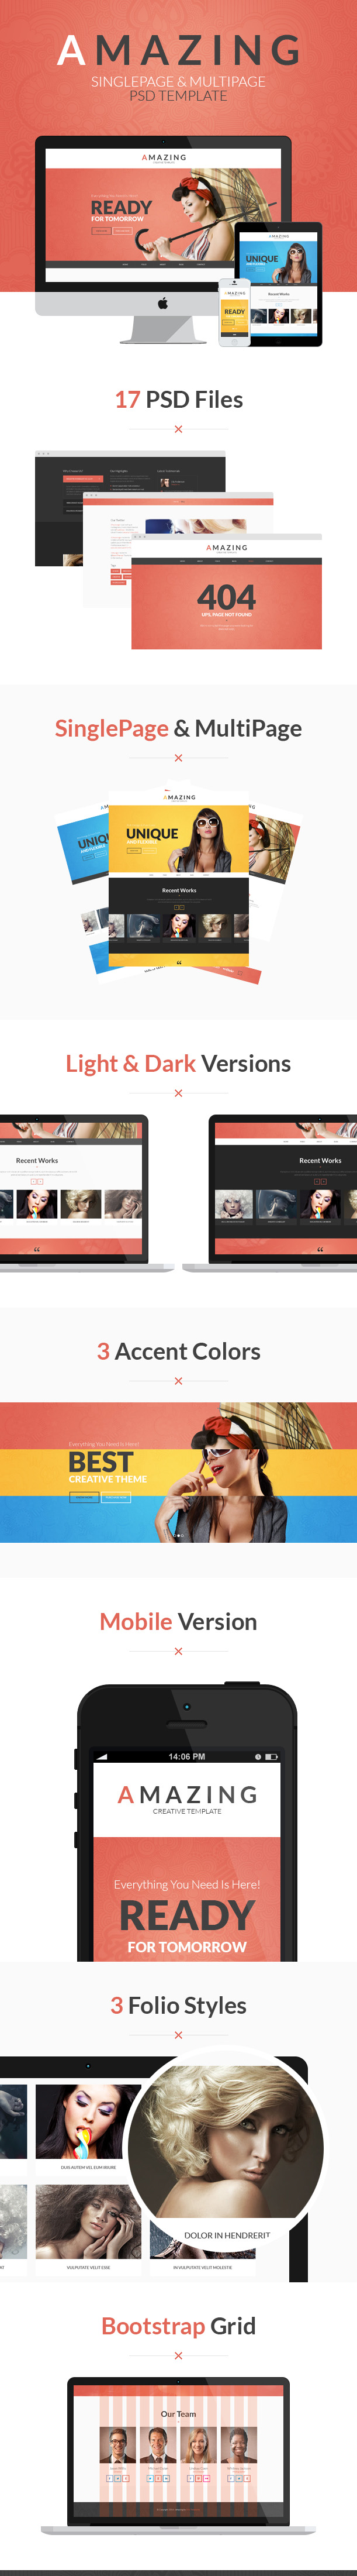 Amazing PSD bootstrap template